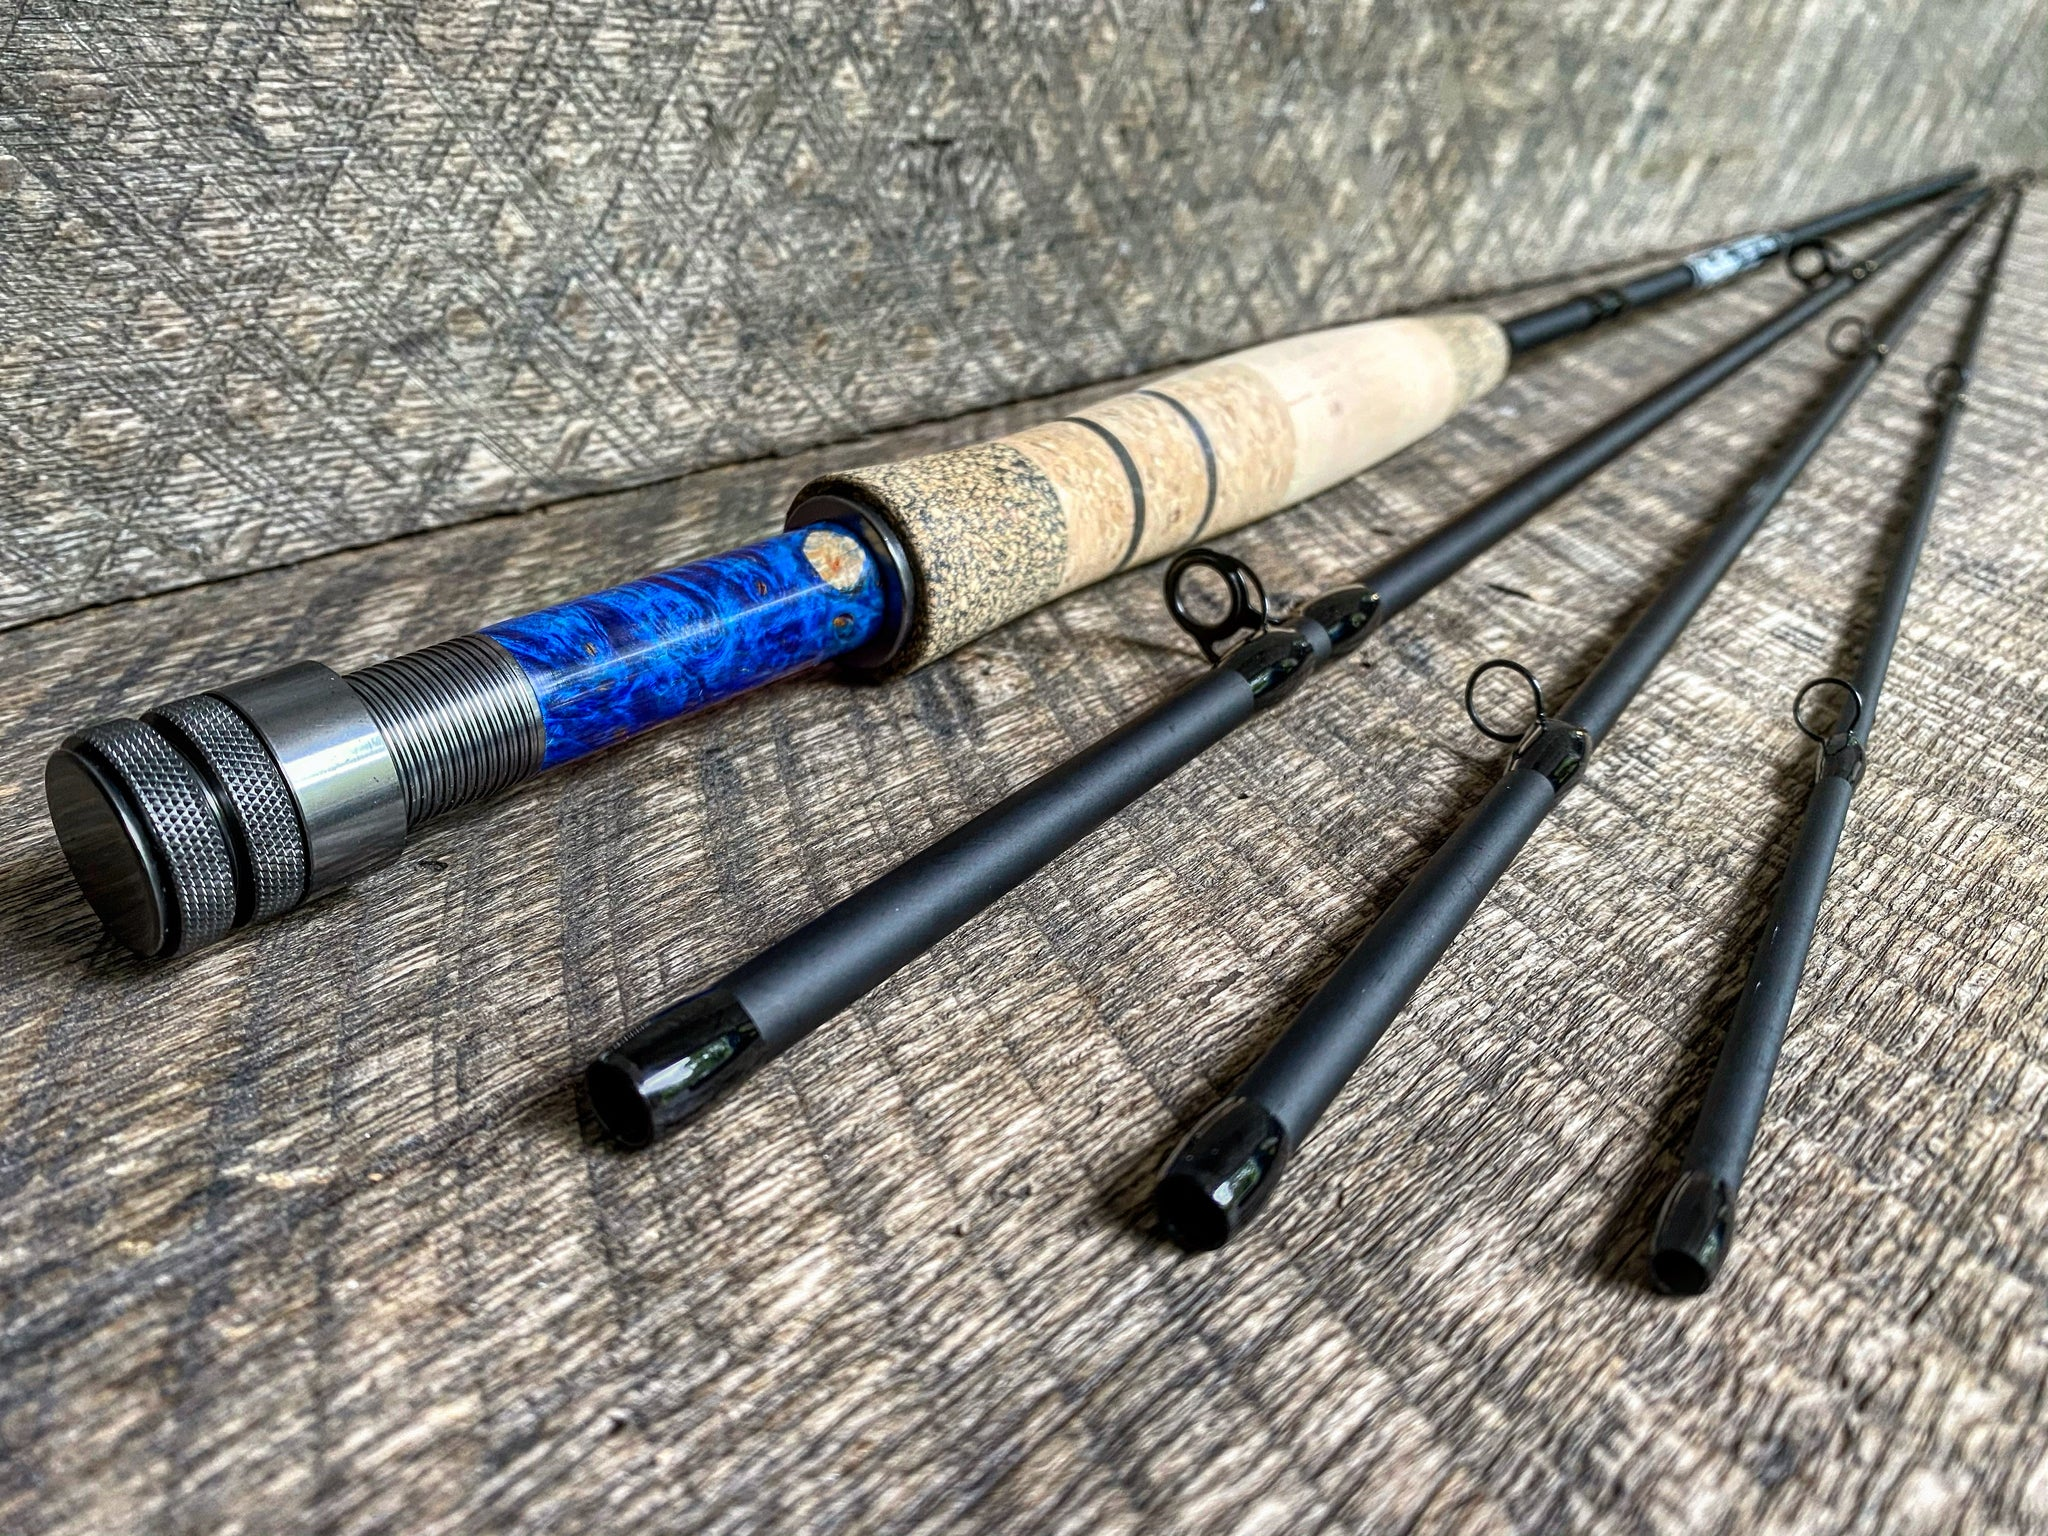 Midnight Special - 5wt - 9' - #2141 Blue Flame Blackout